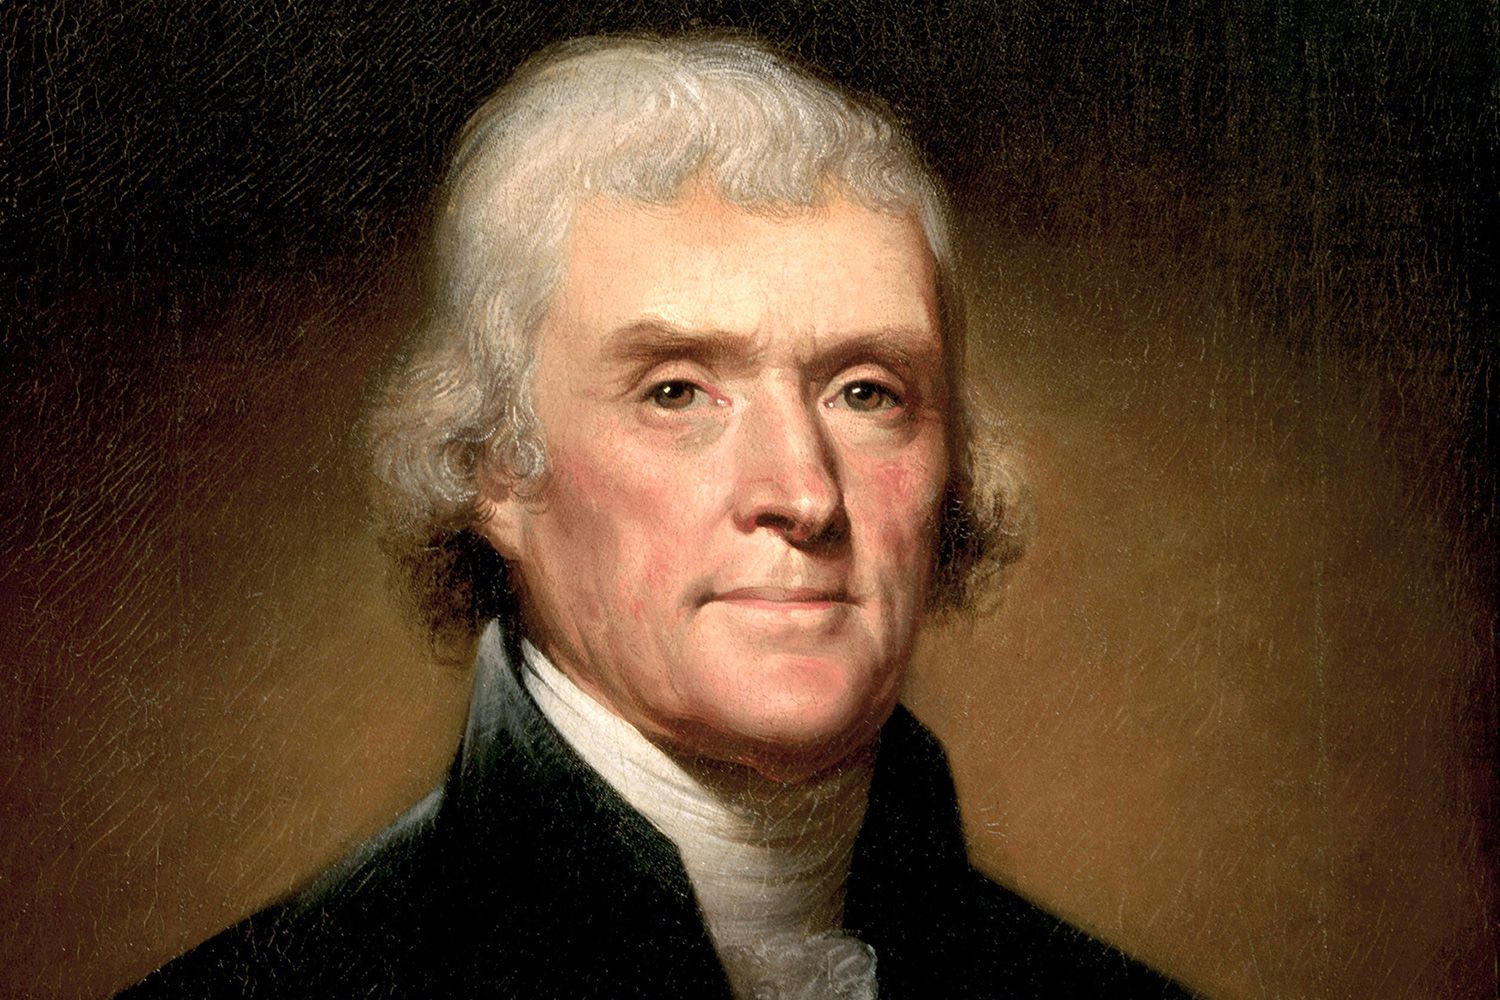 Uncategorized Thomas Jefferson Pictures To Print thomas jefferson facts and brief biography jeffersons biggest problem with the louisiana purchase